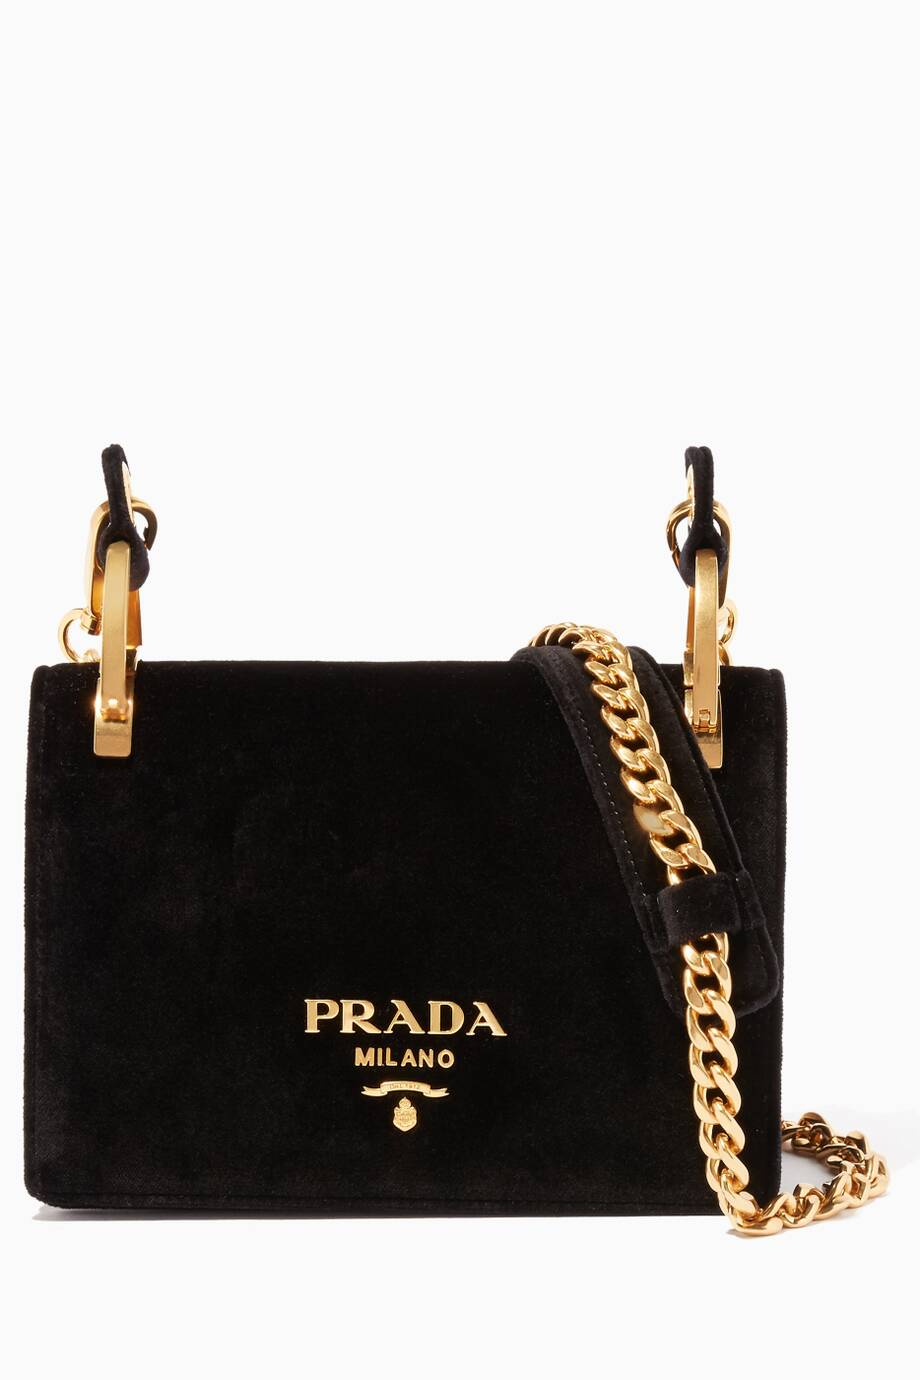 345fd1f0a6a5 ... switzerland shop luxury prada black velvet cross body bag ounass uae  f2c83 fa8ec